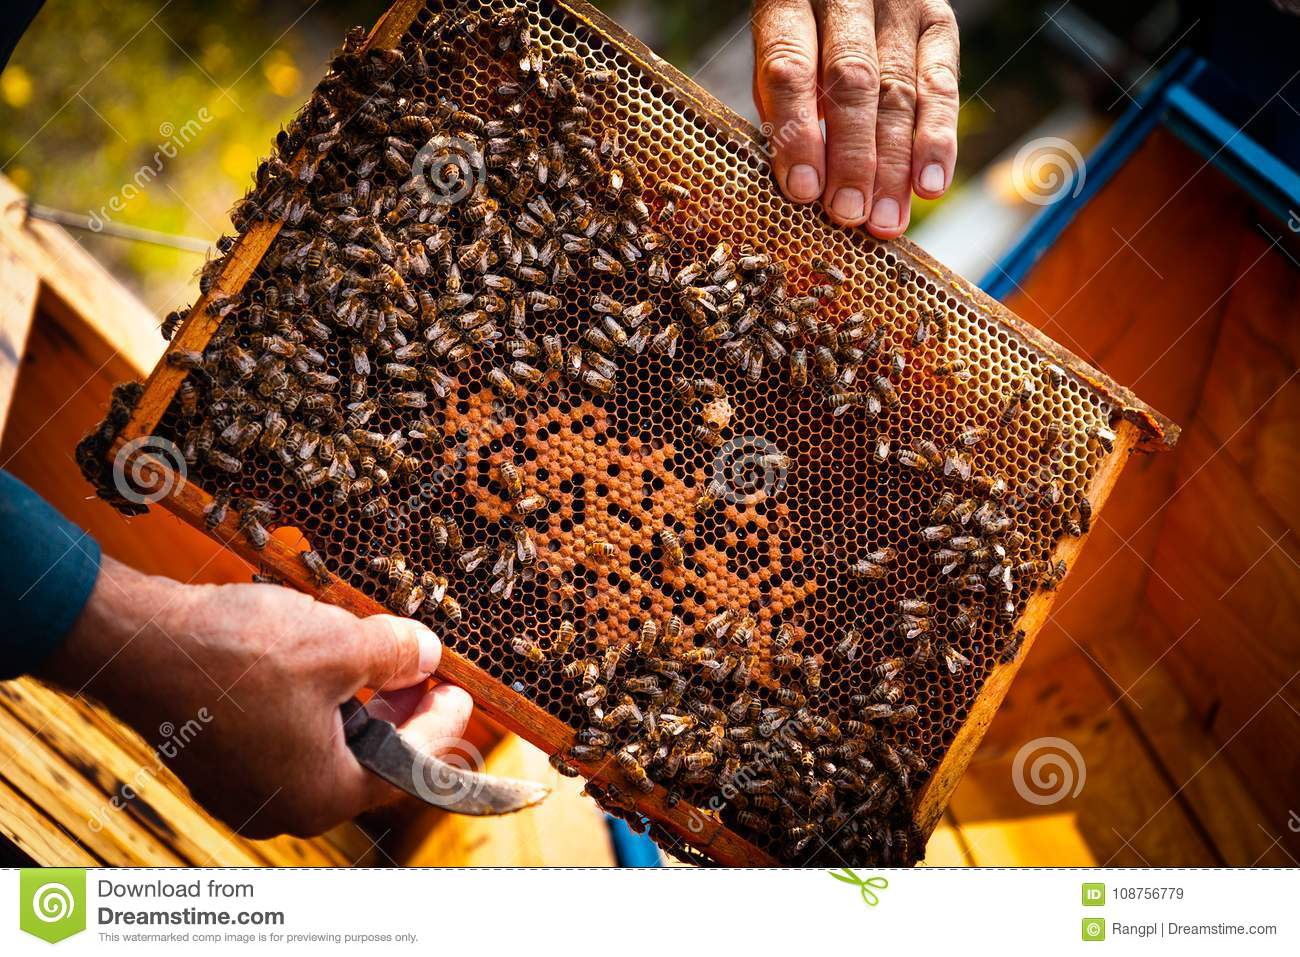 Beehive colony frame stock image. Image of hive, beekeeping - 108756779